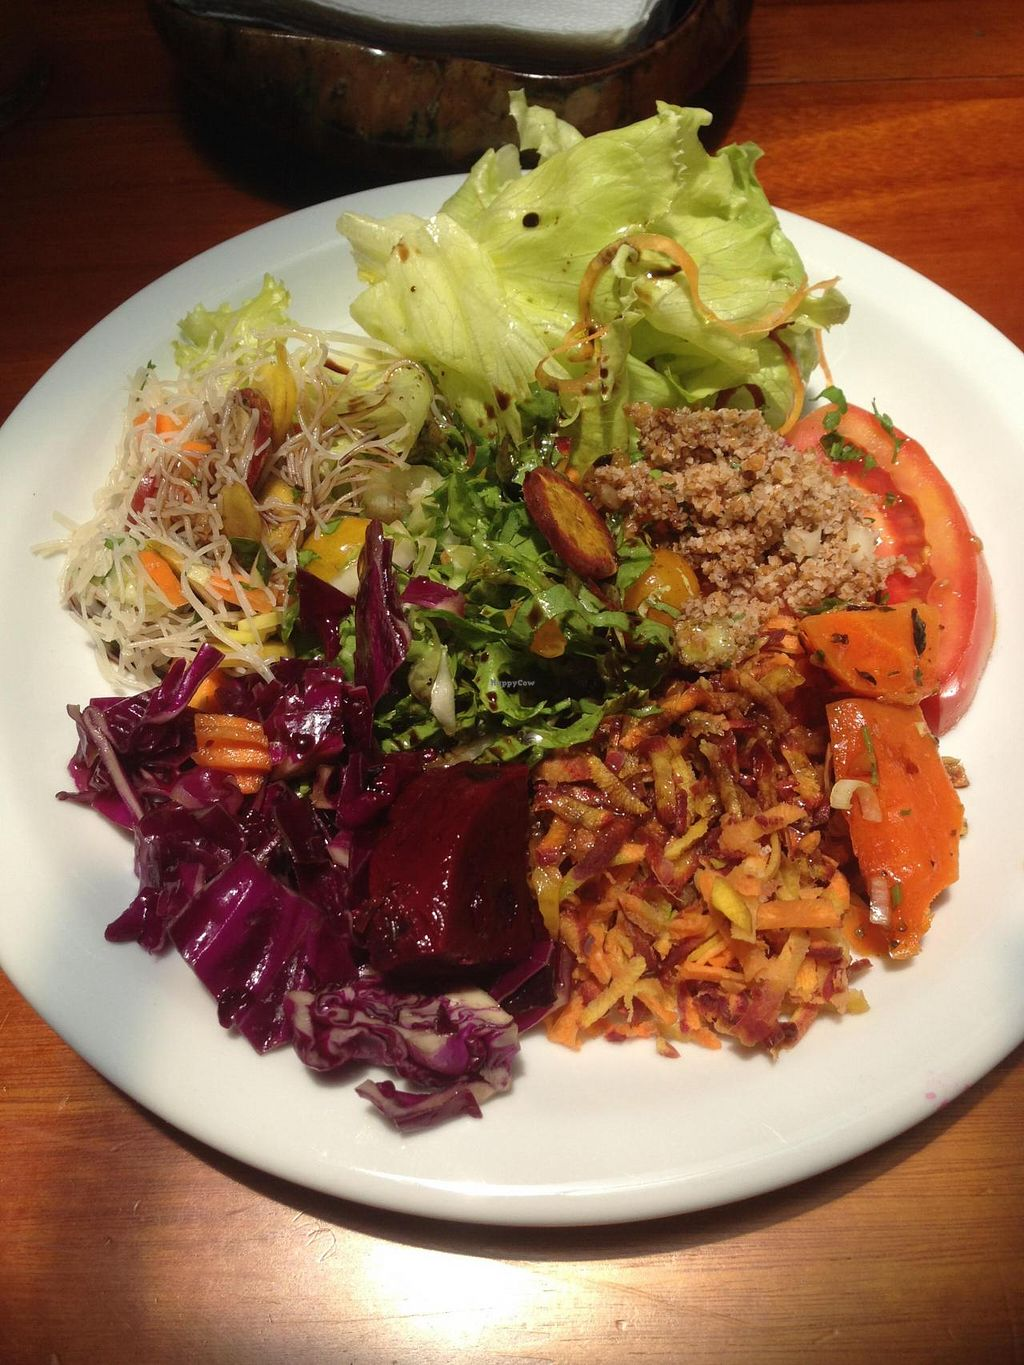 """Photo of Casa Jaya - Nectare  by <a href=""""/members/profile/Paolla"""">Paolla</a> <br/>Some of the options of the salad buffet on Monday <br/> November 17, 2014  - <a href='/contact/abuse/image/46171/85938'>Report</a>"""